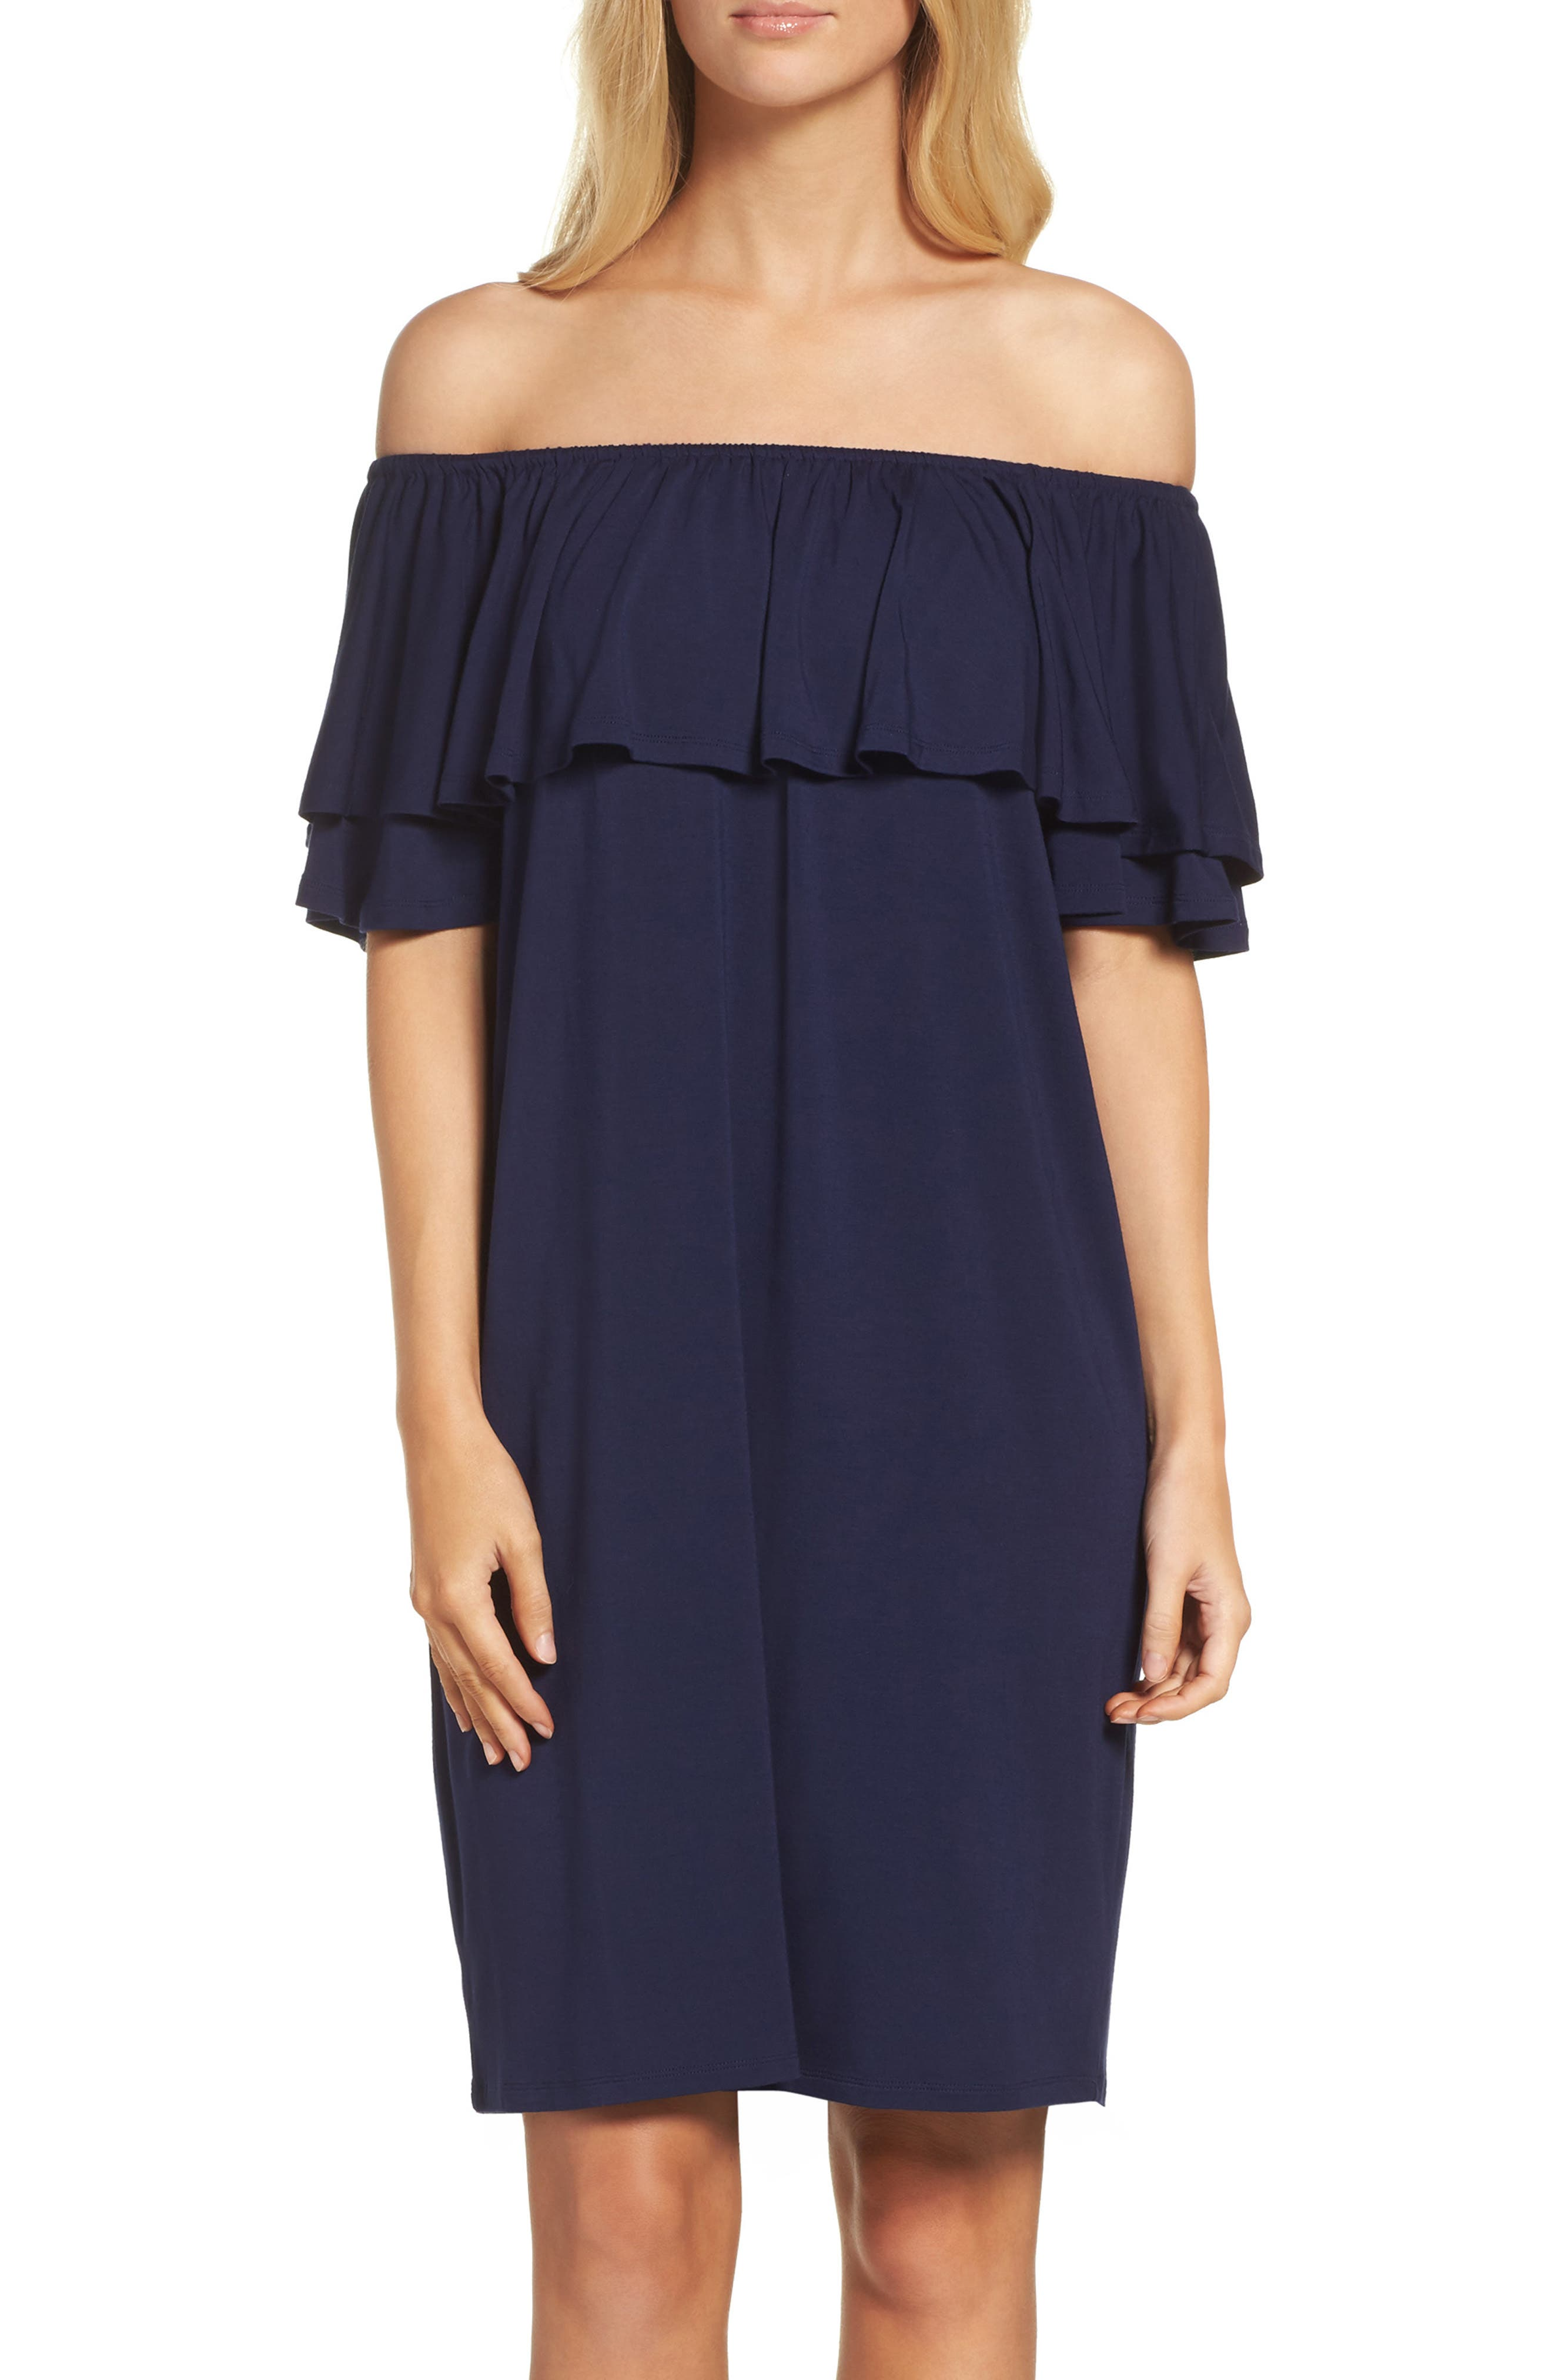 FELICITY & COCO Off the Shoulder Dress